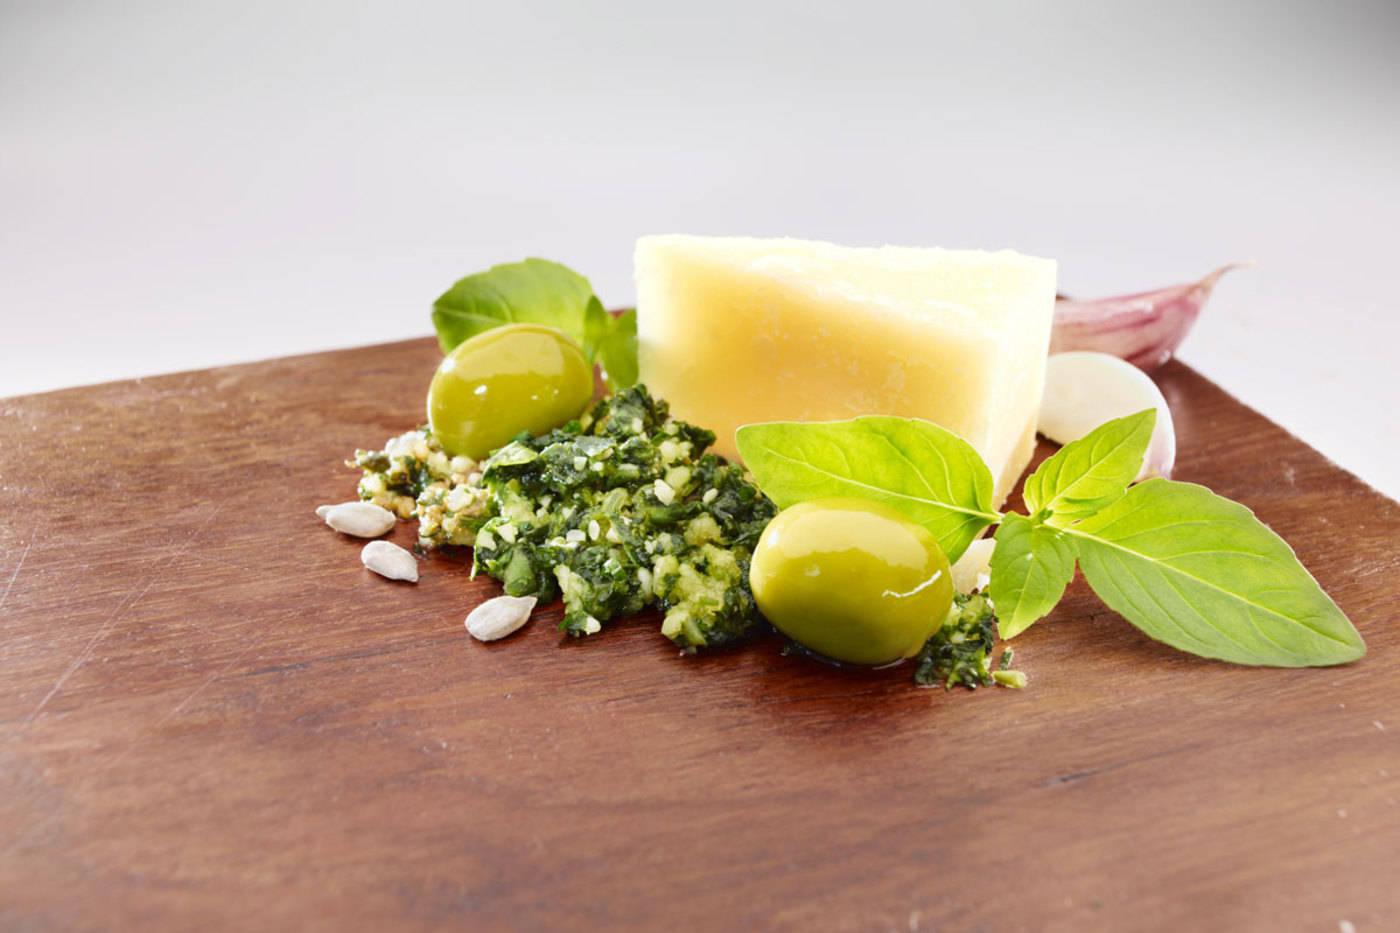 Normal_gruenes_pesto_0173_ebv